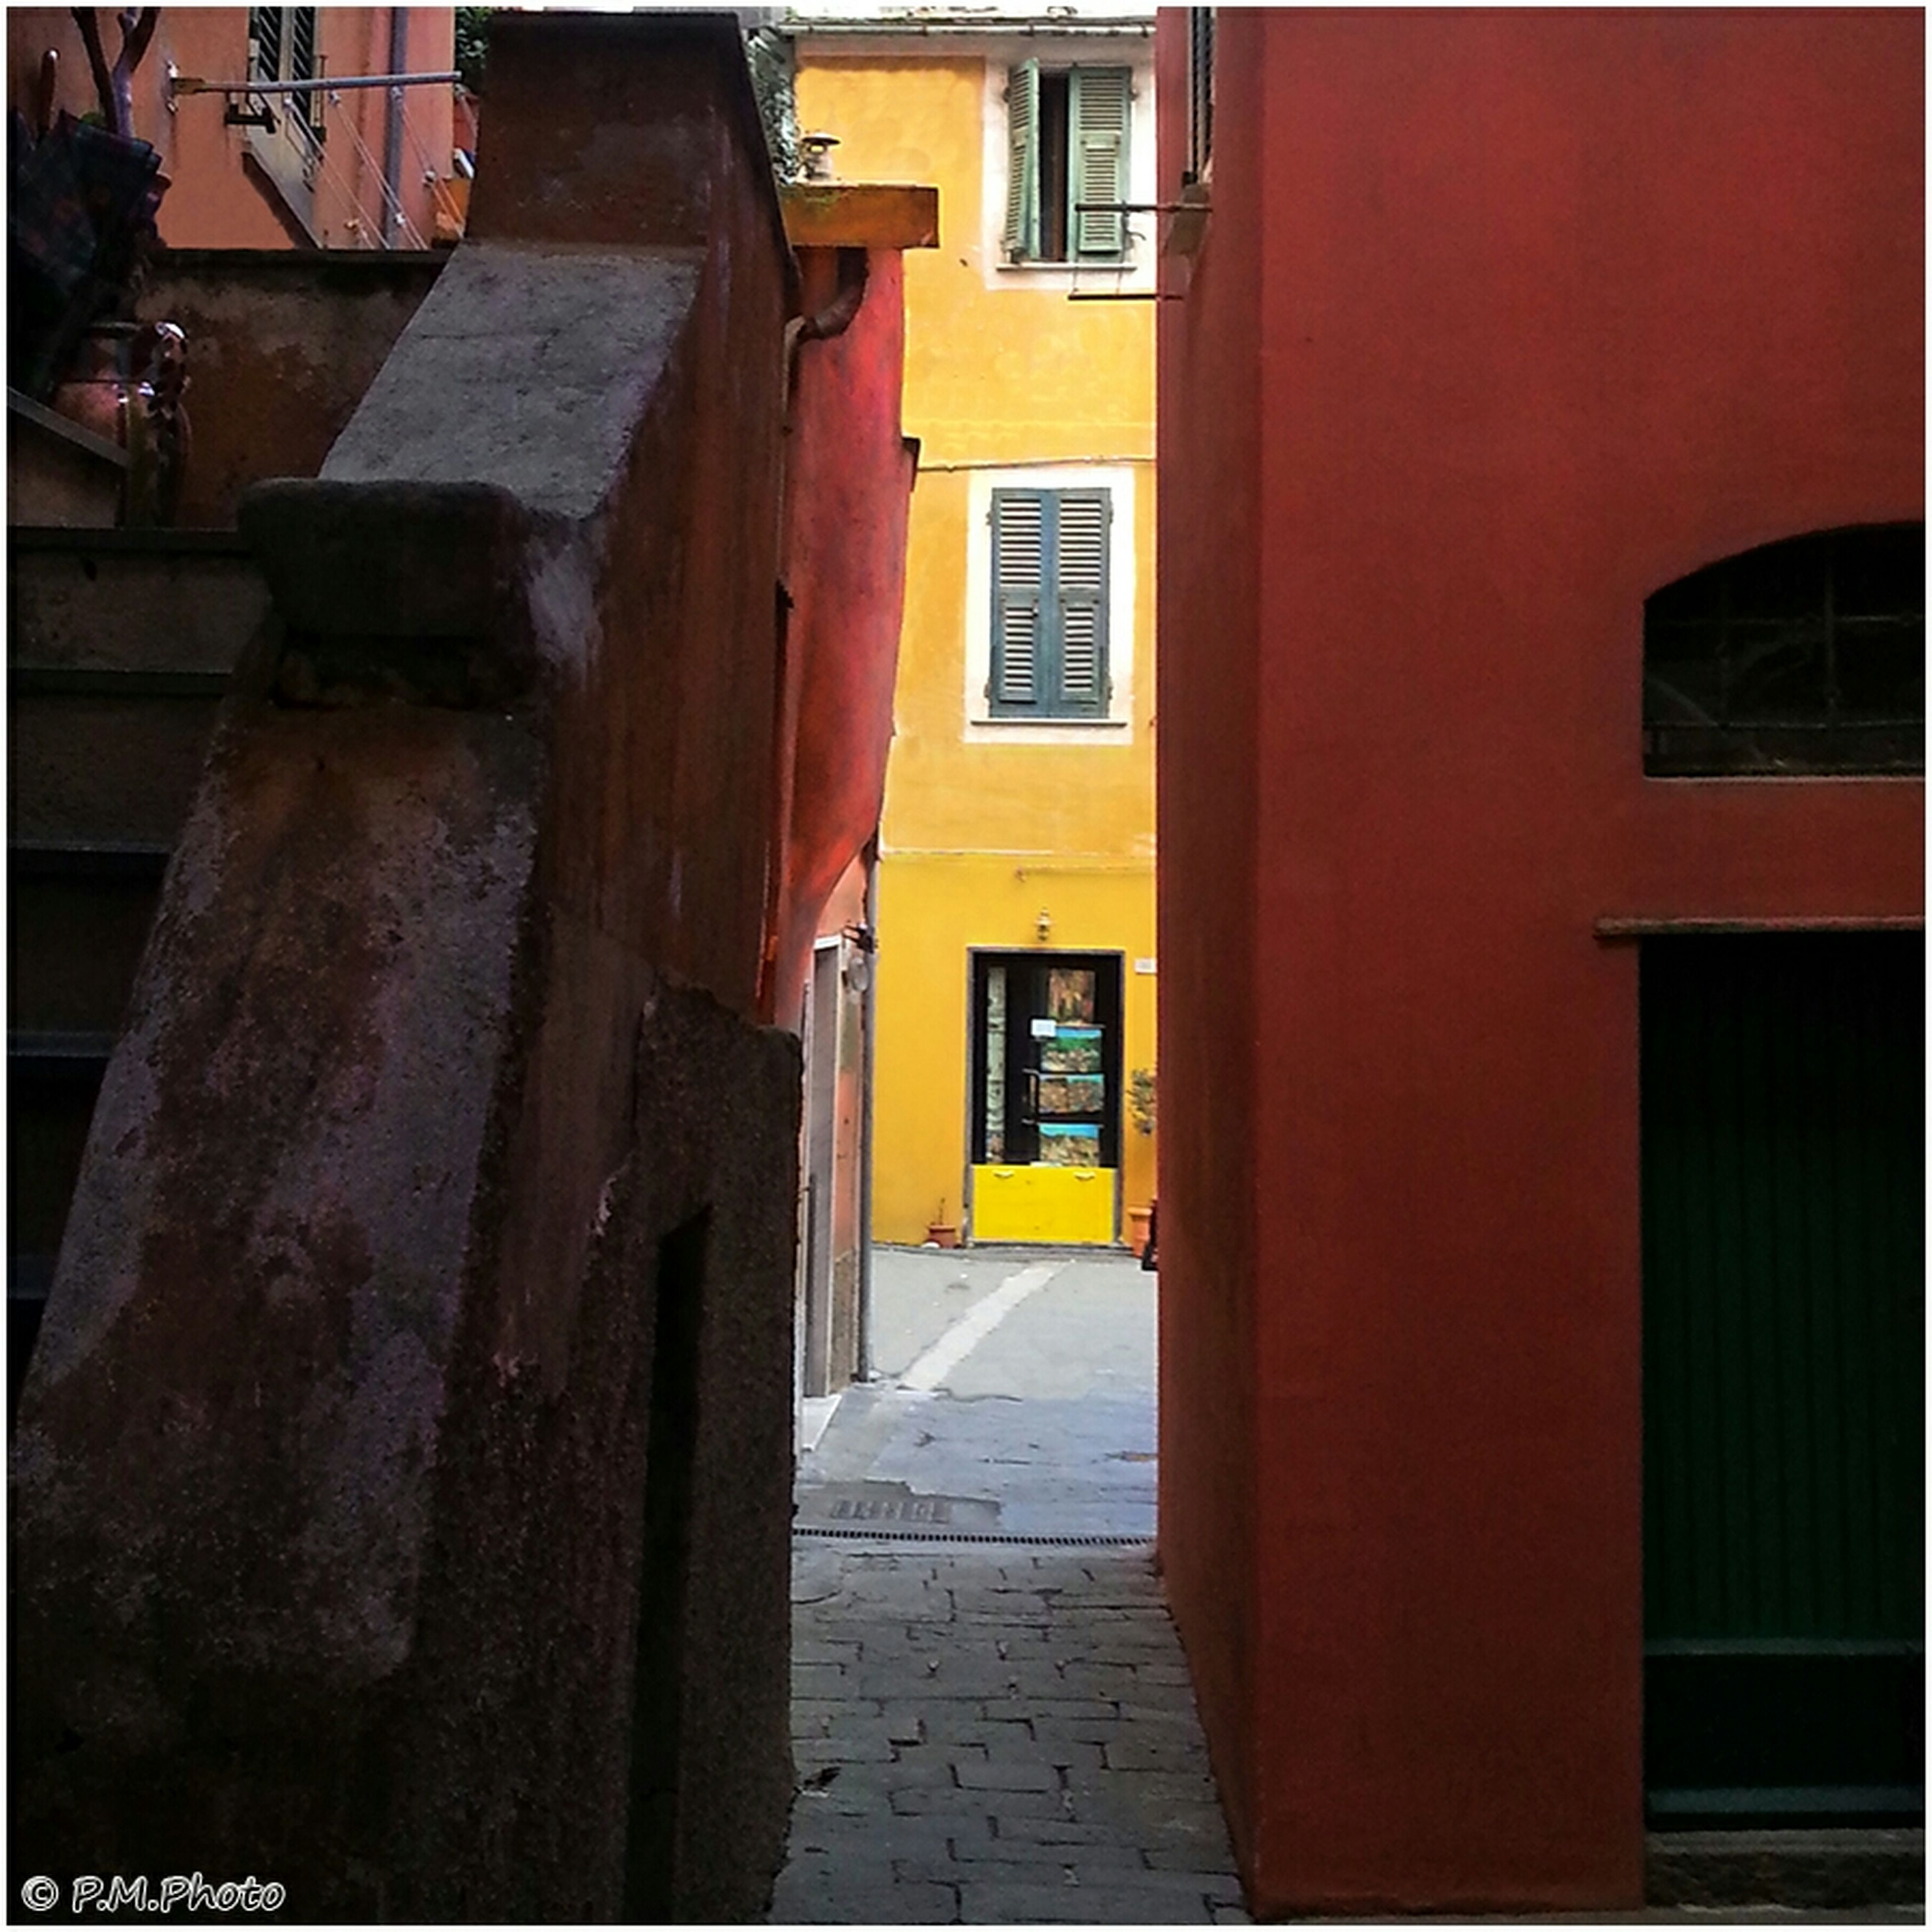 architecture, built structure, building exterior, window, residential structure, residential building, building, house, door, narrow, the way forward, alley, no people, outdoors, street, brick wall, entrance, red, city, wall - building feature